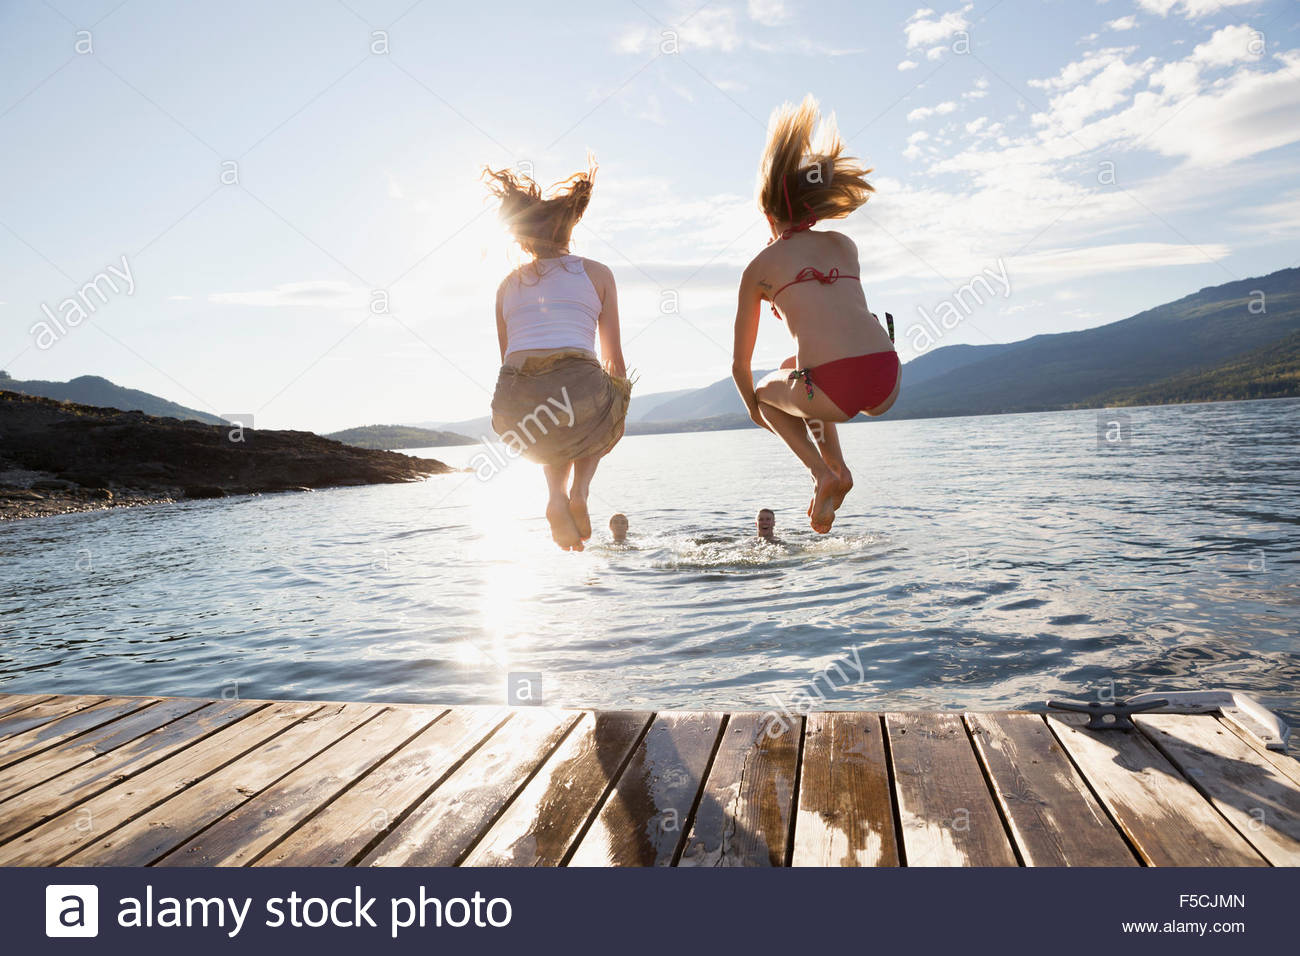 Young women jumping from dock into lake - Stock Image